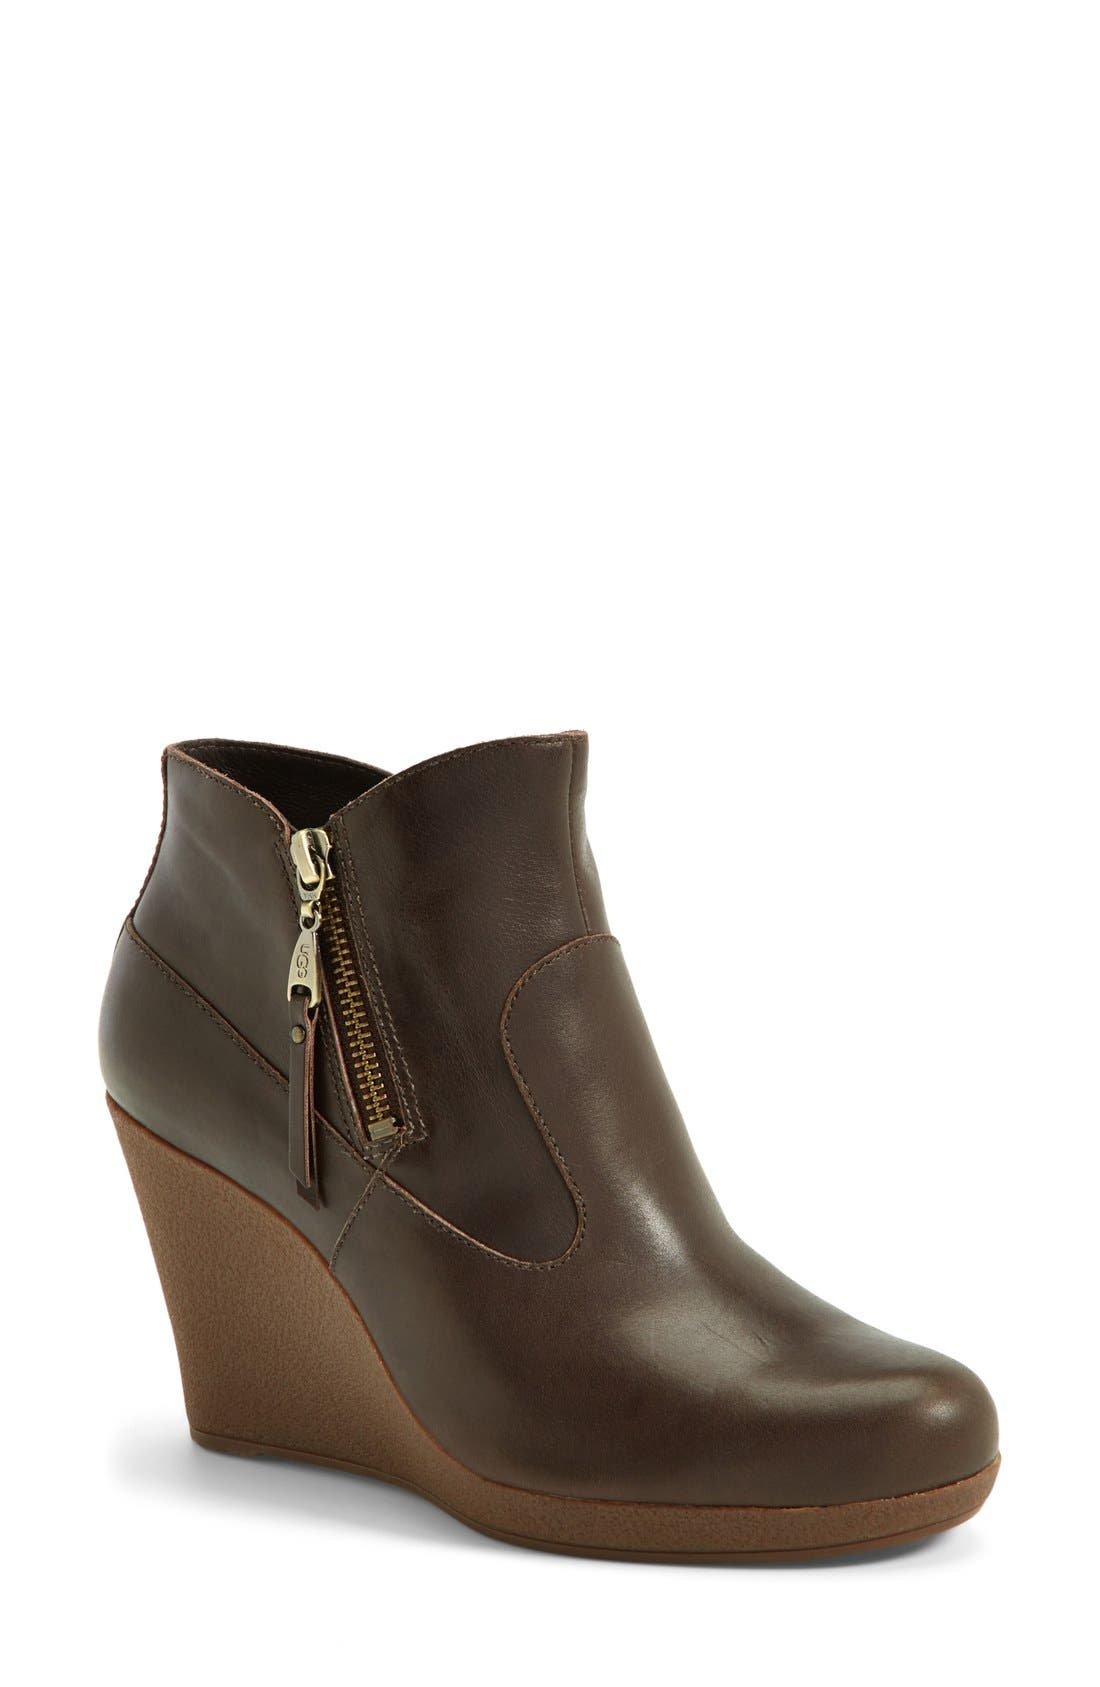 Alternate Image 1 Selected - UGG® Australia 'Meredith' Wedge Bootie (Women)